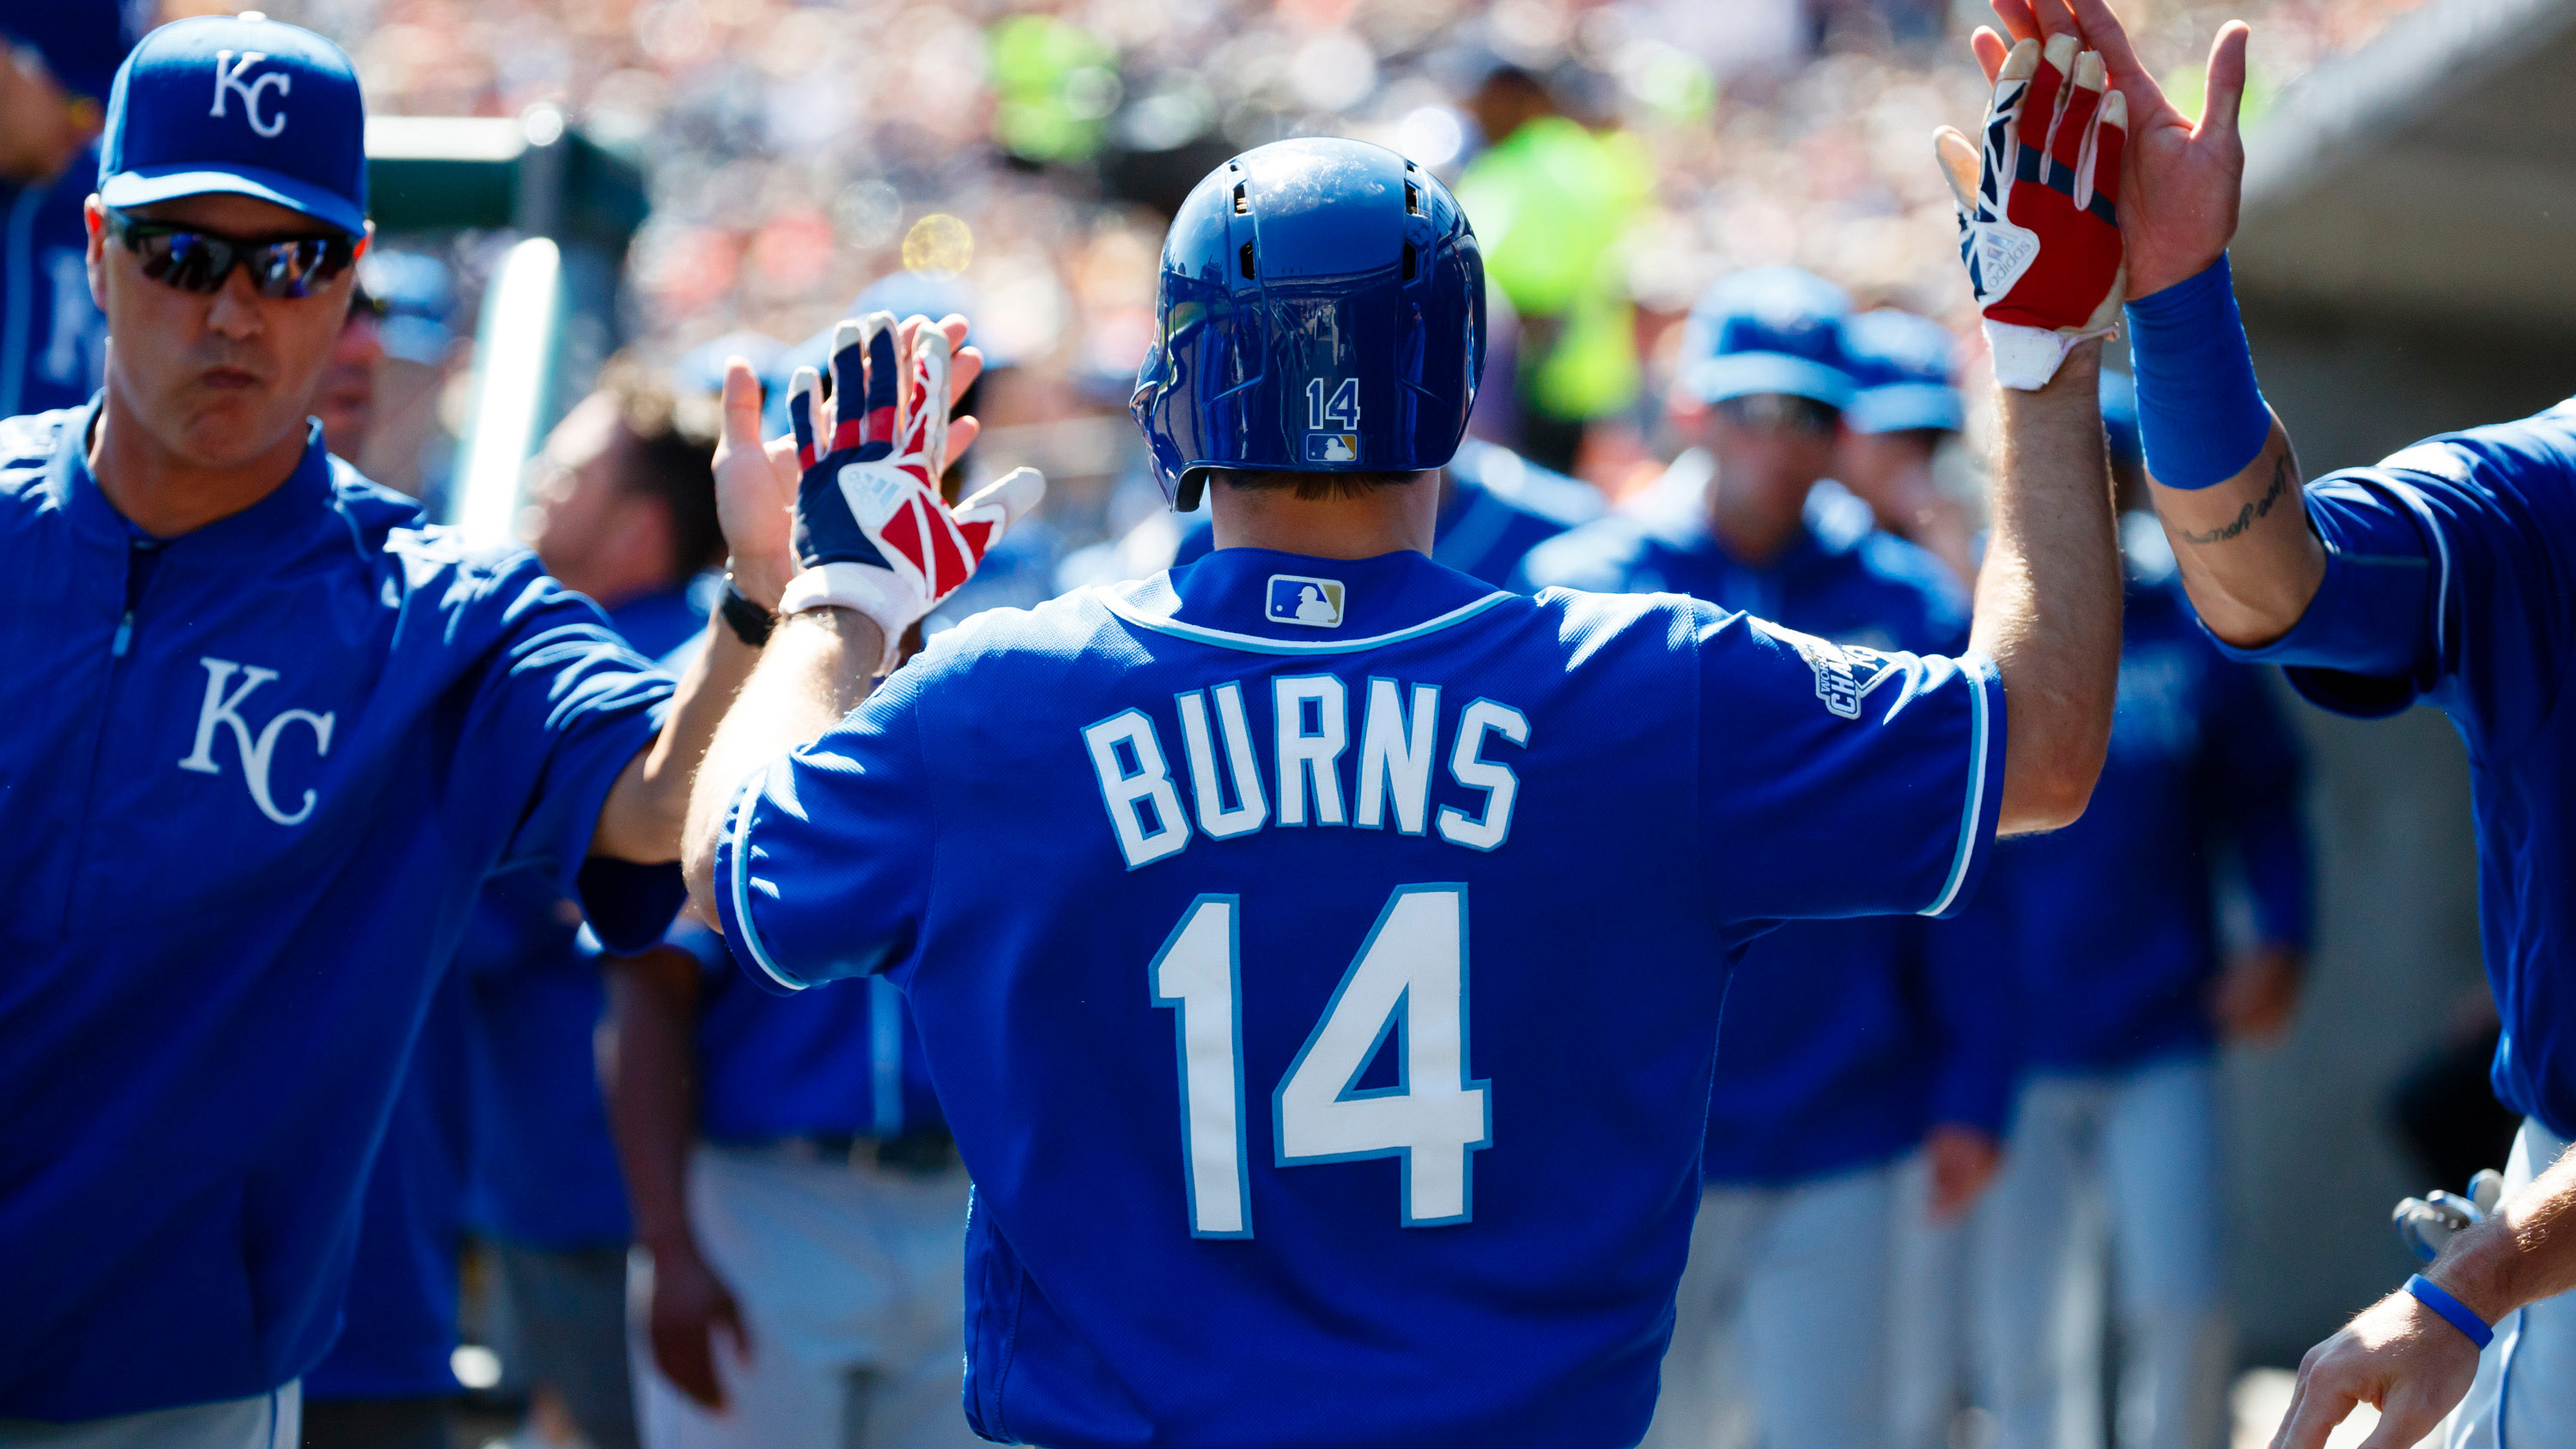 Dyson's departure could give Royals' Billy Burns more playing time